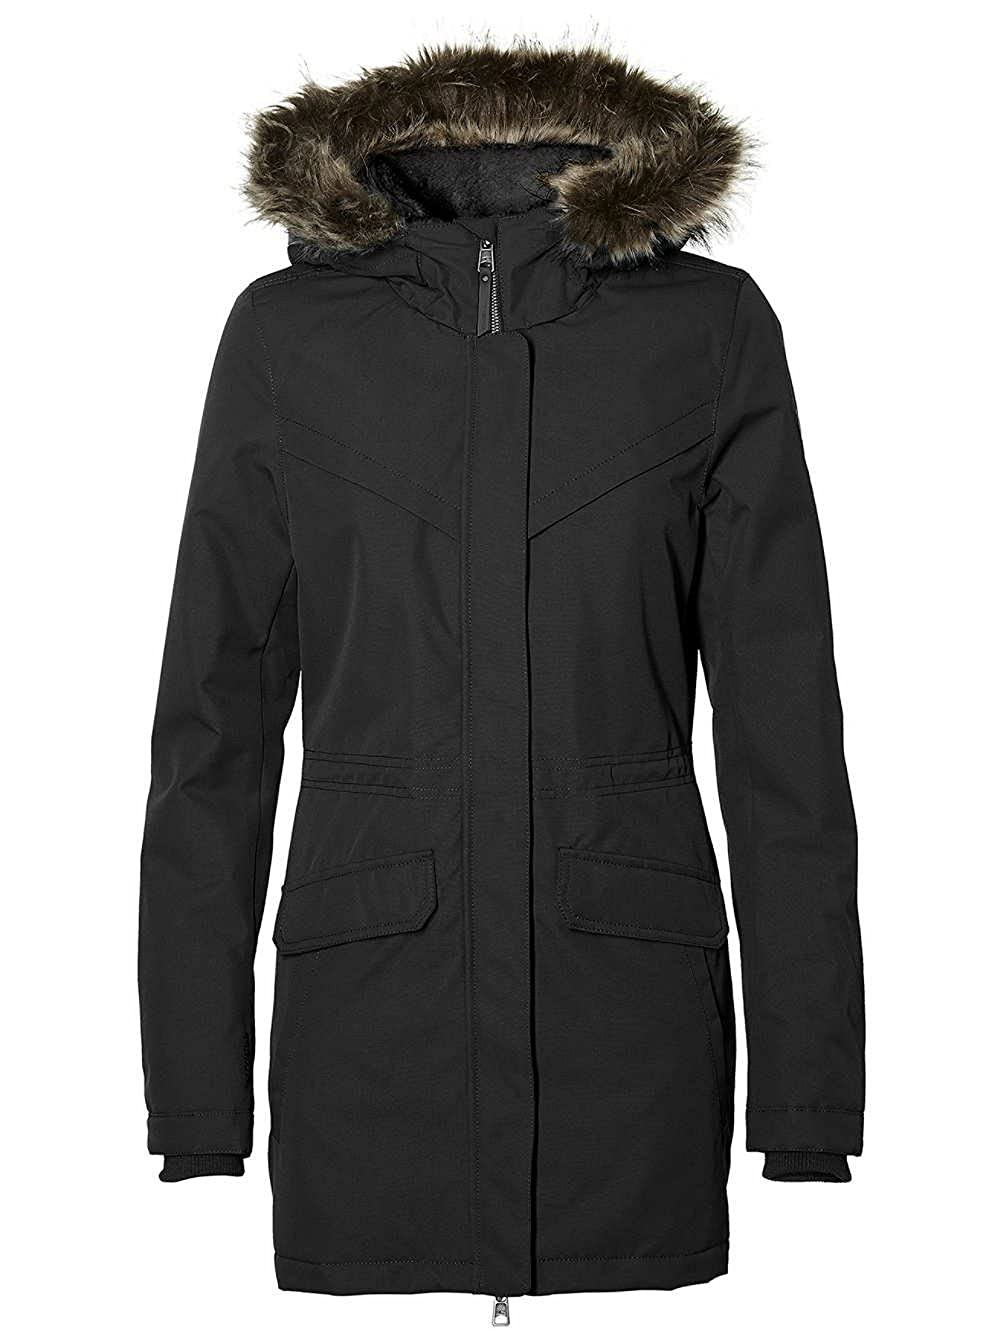 TALLA M. O 'Neill Journey Parka Jacket Technical